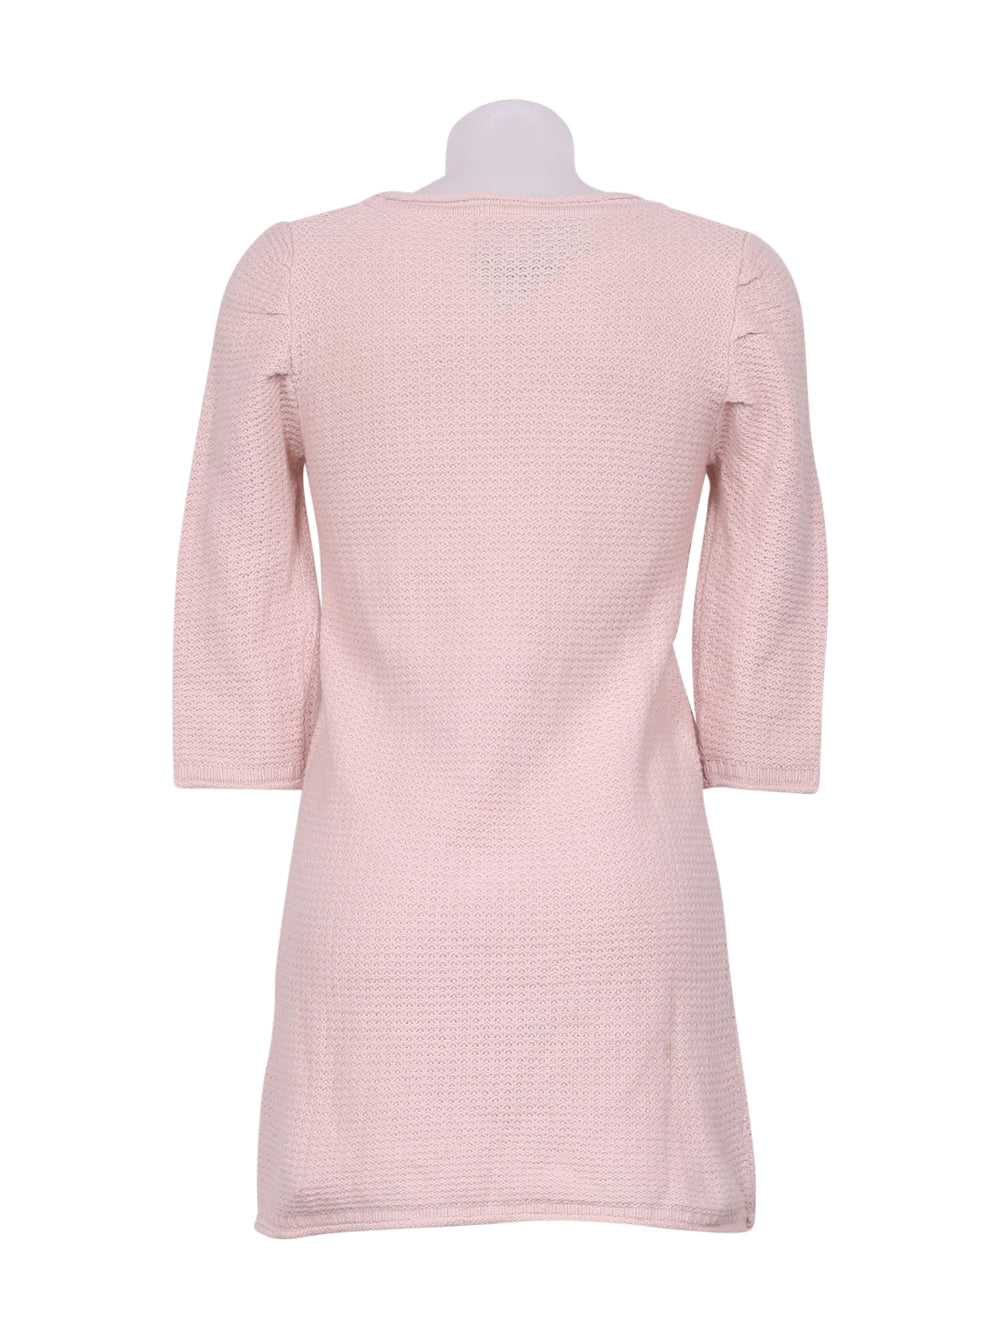 Back photo of Preloved bsk Pink Woman's long sleeved shirt - size 12/L